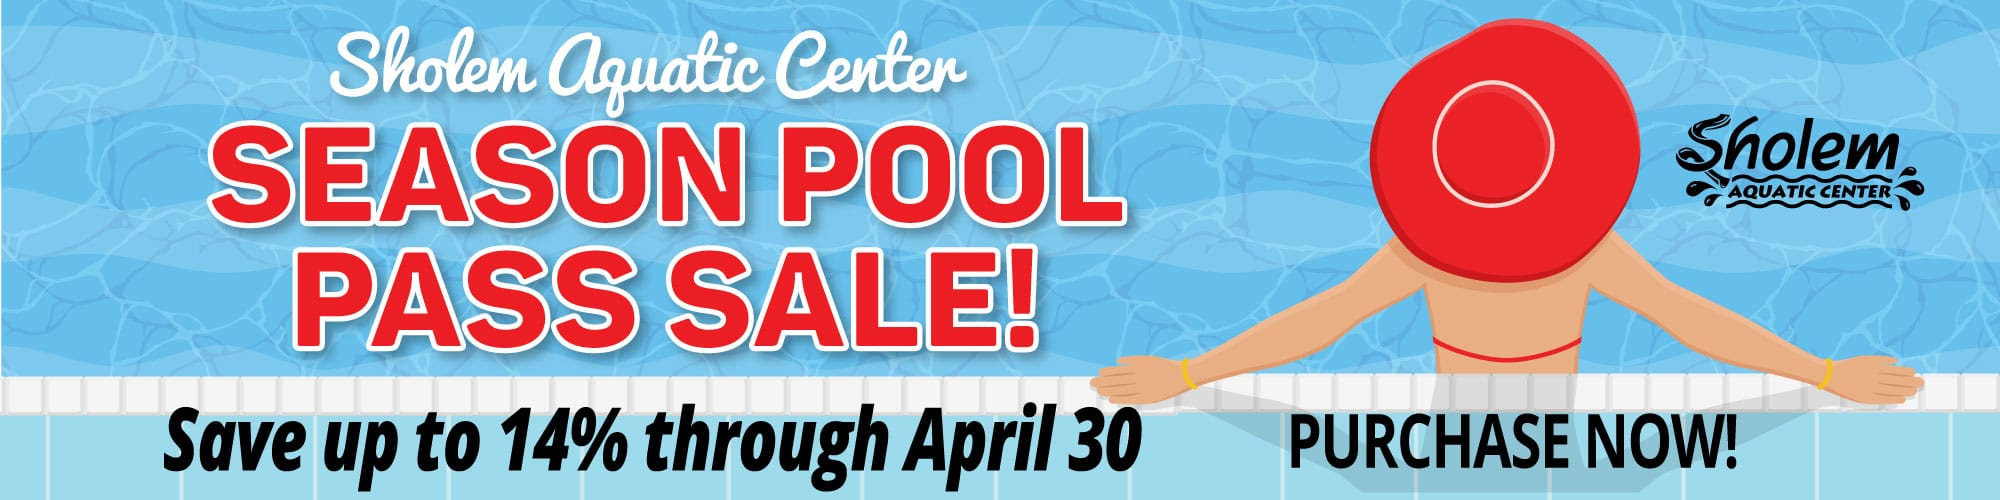 Season-Pool-Pass-Sale-18-2000x500